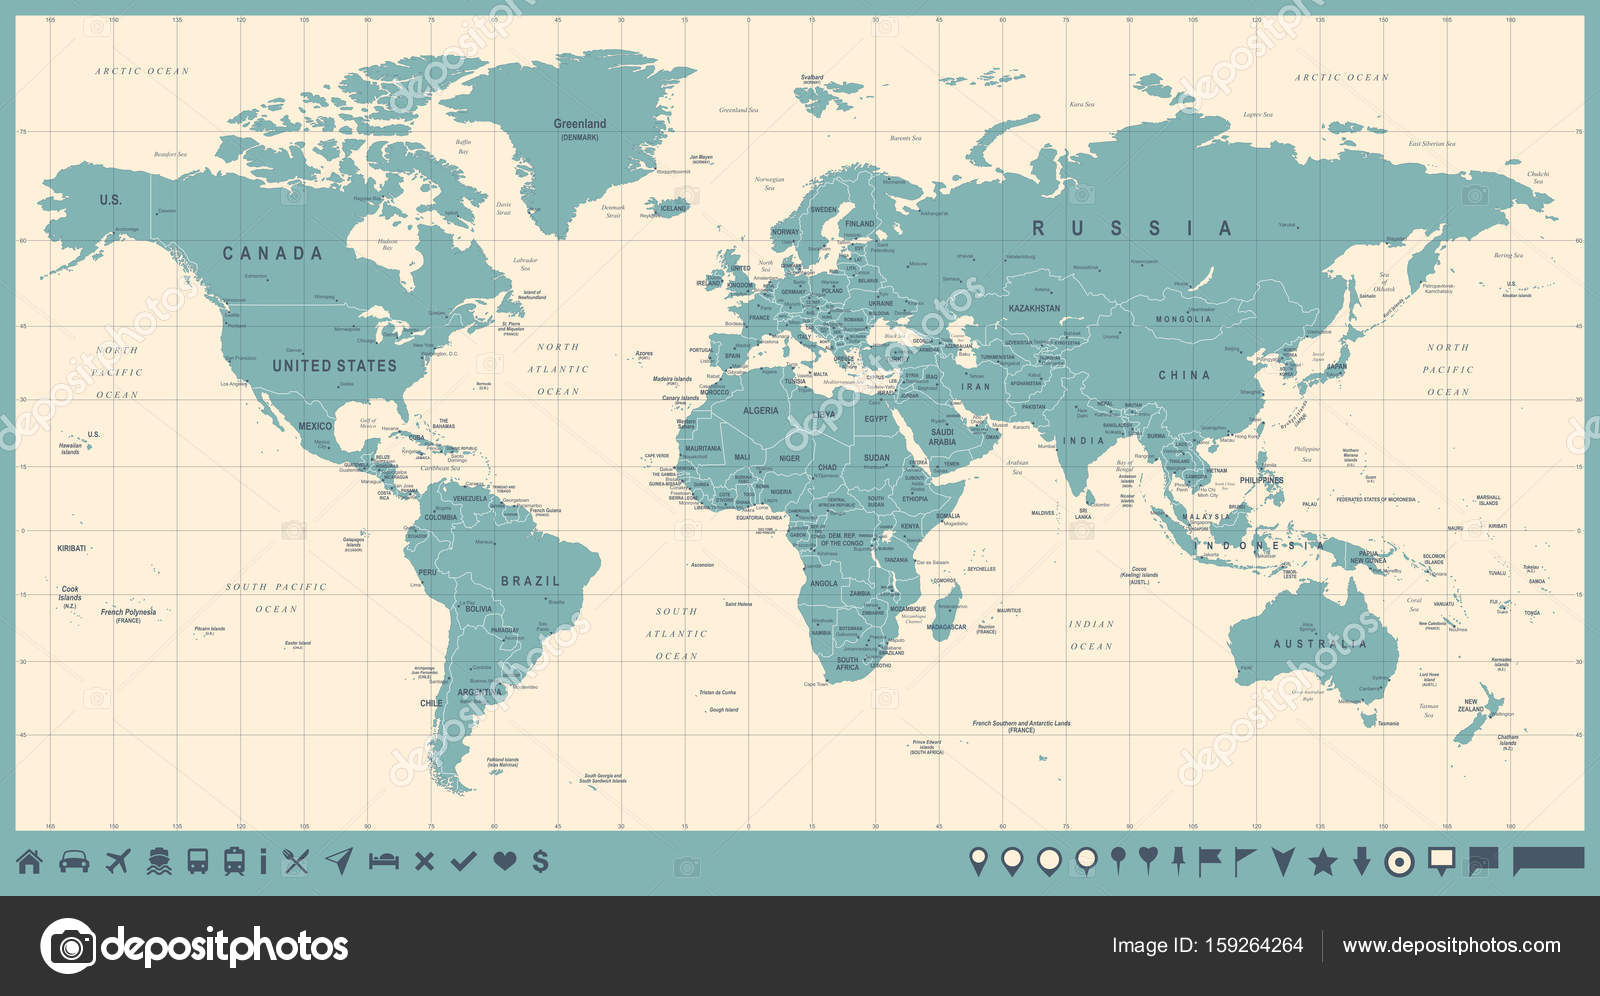 World map vector vintage detailed illustration of worldmap stock world map vector vintage detailed illustration of worldmap stock vector gumiabroncs Image collections